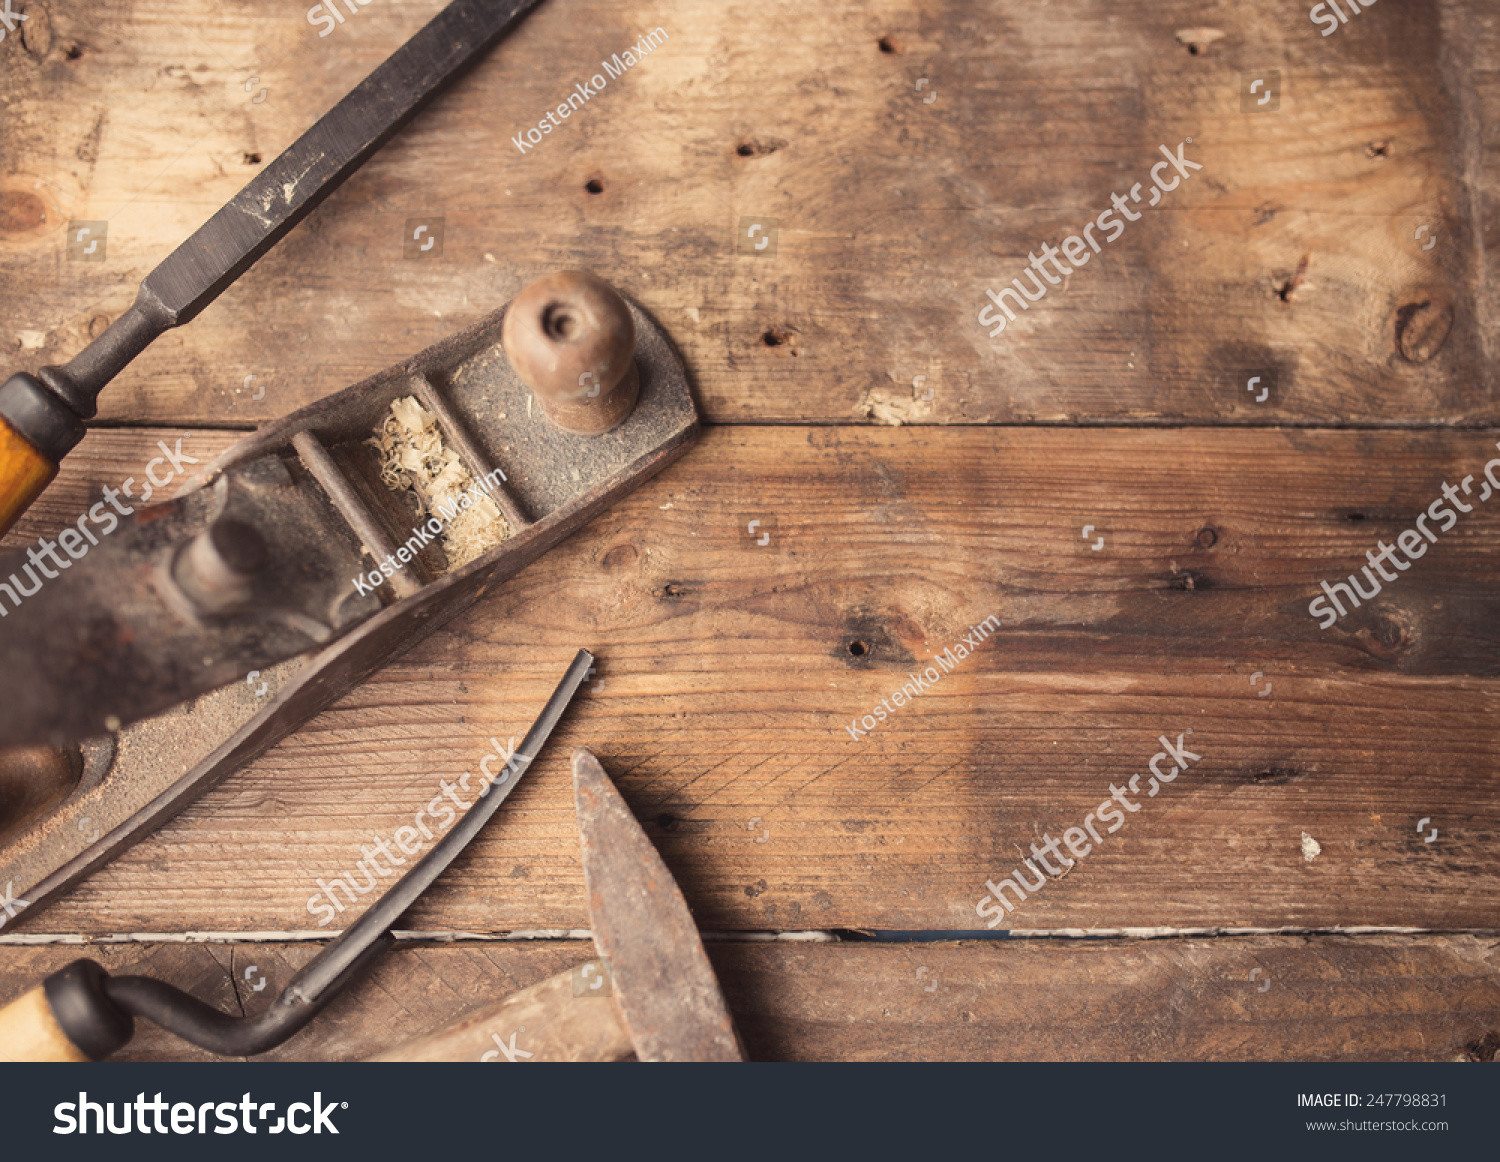 Tools Required for Hardwood Floor Installation Of tool Renovation On Wood Ez Canvas with Regard to Stock Photo Od Vintage Hand tools On Wooden Background Carpenter Workplace Tinted Photo 247798831